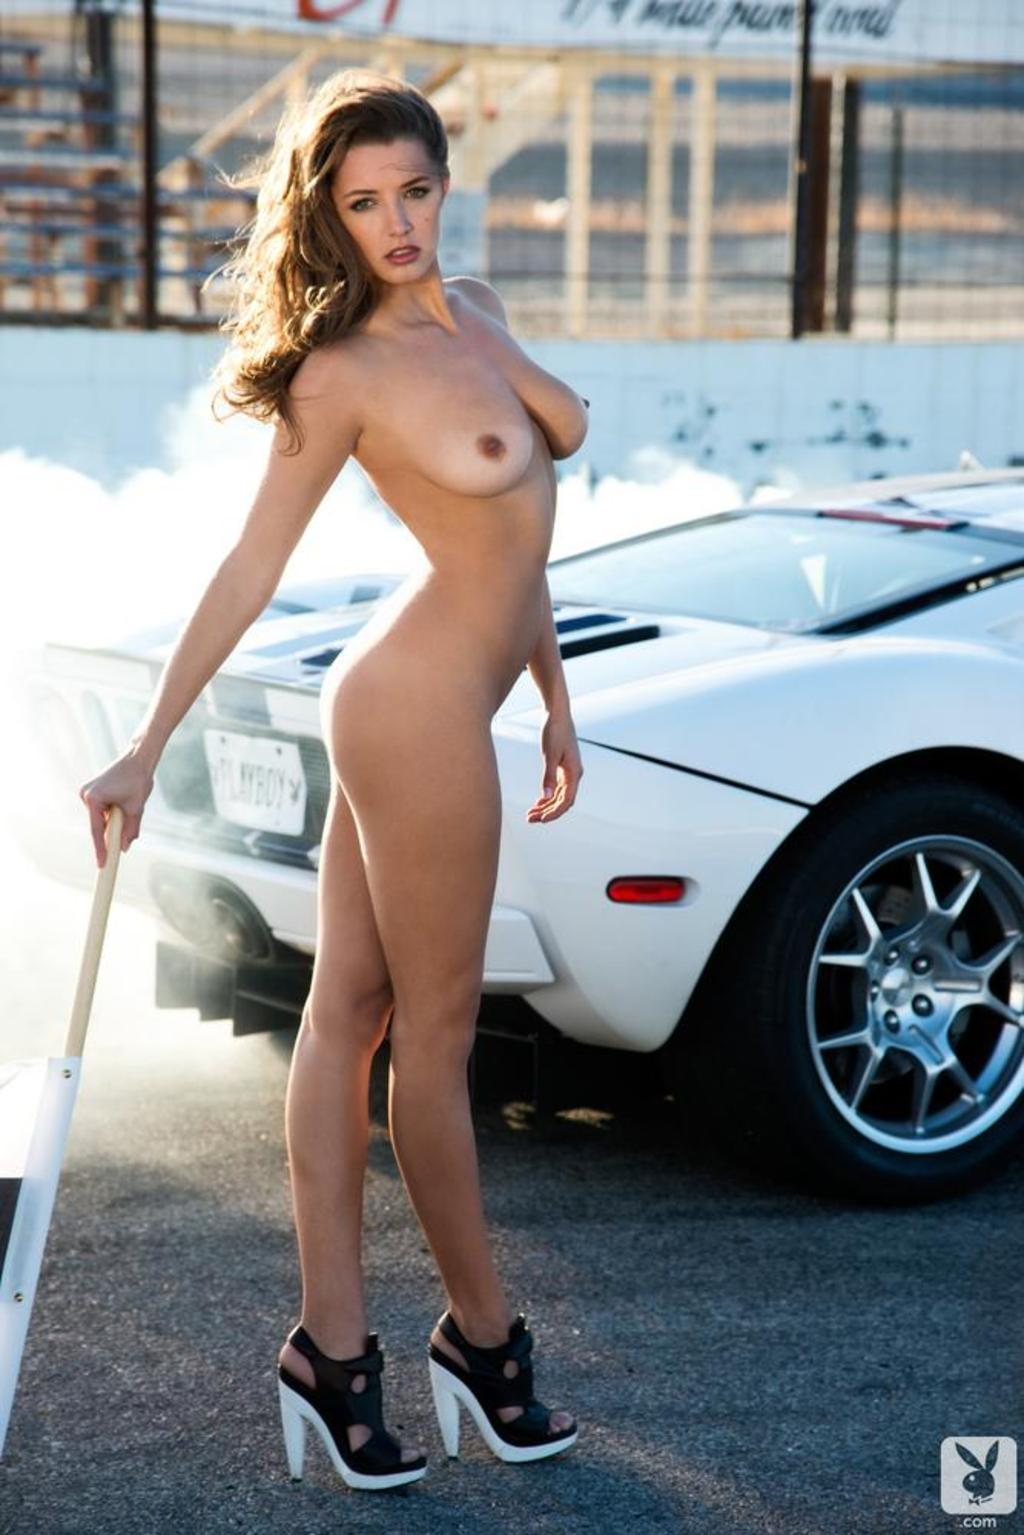 alyssa arce naked in a white ford race car - picture 13 / 16